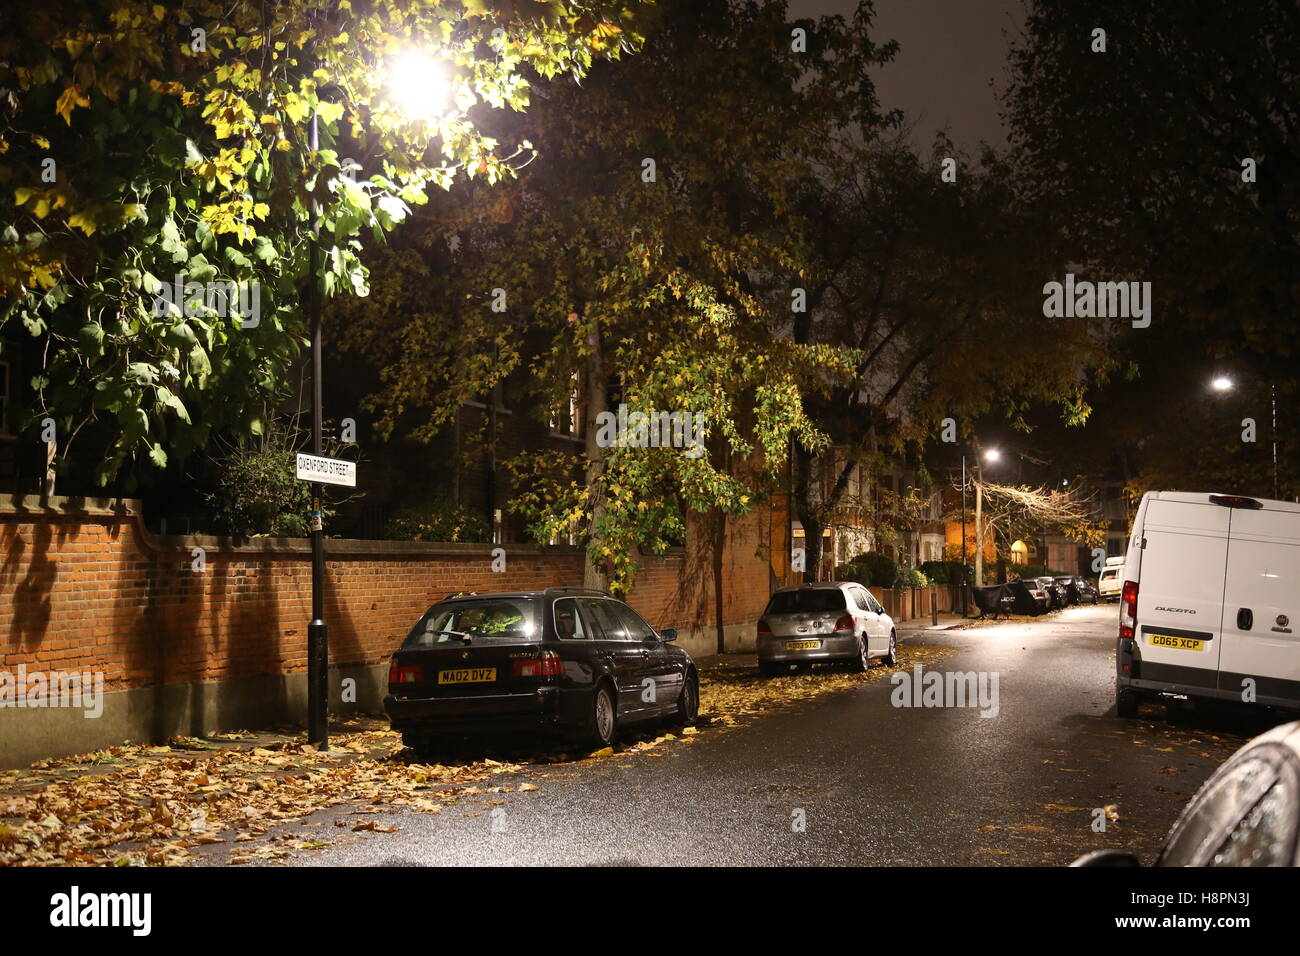 Autumn leaves cover the pavements and road in a typical South London street after dark on a wet night - Stock Image